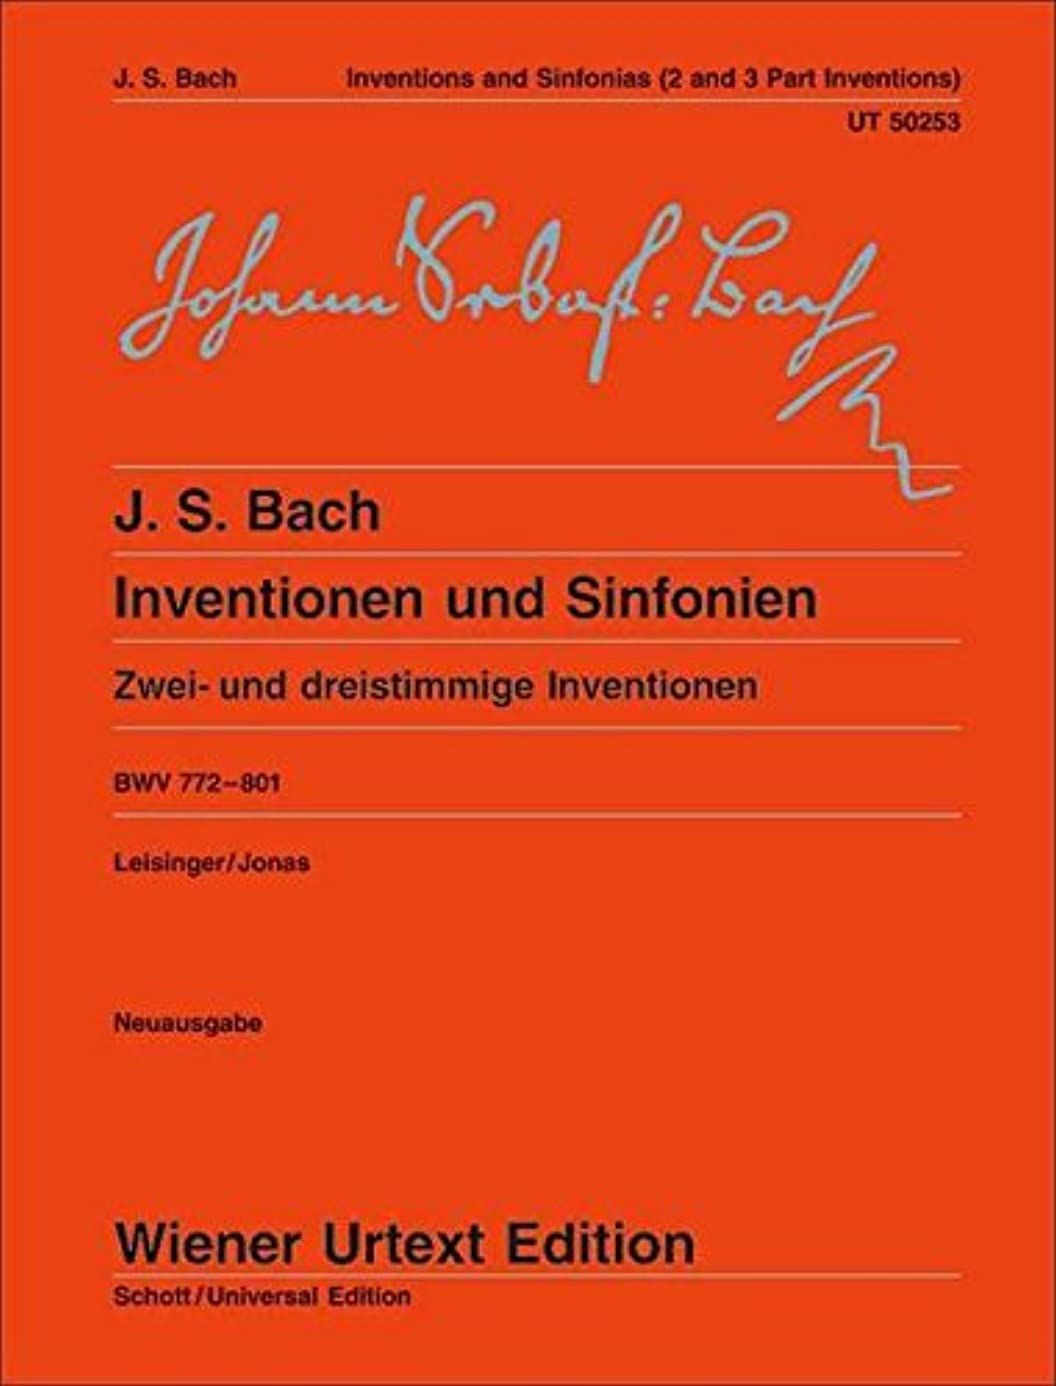 Inventions and Sinfonias BWV 772: 801 Two and Three Part Inventions Piano